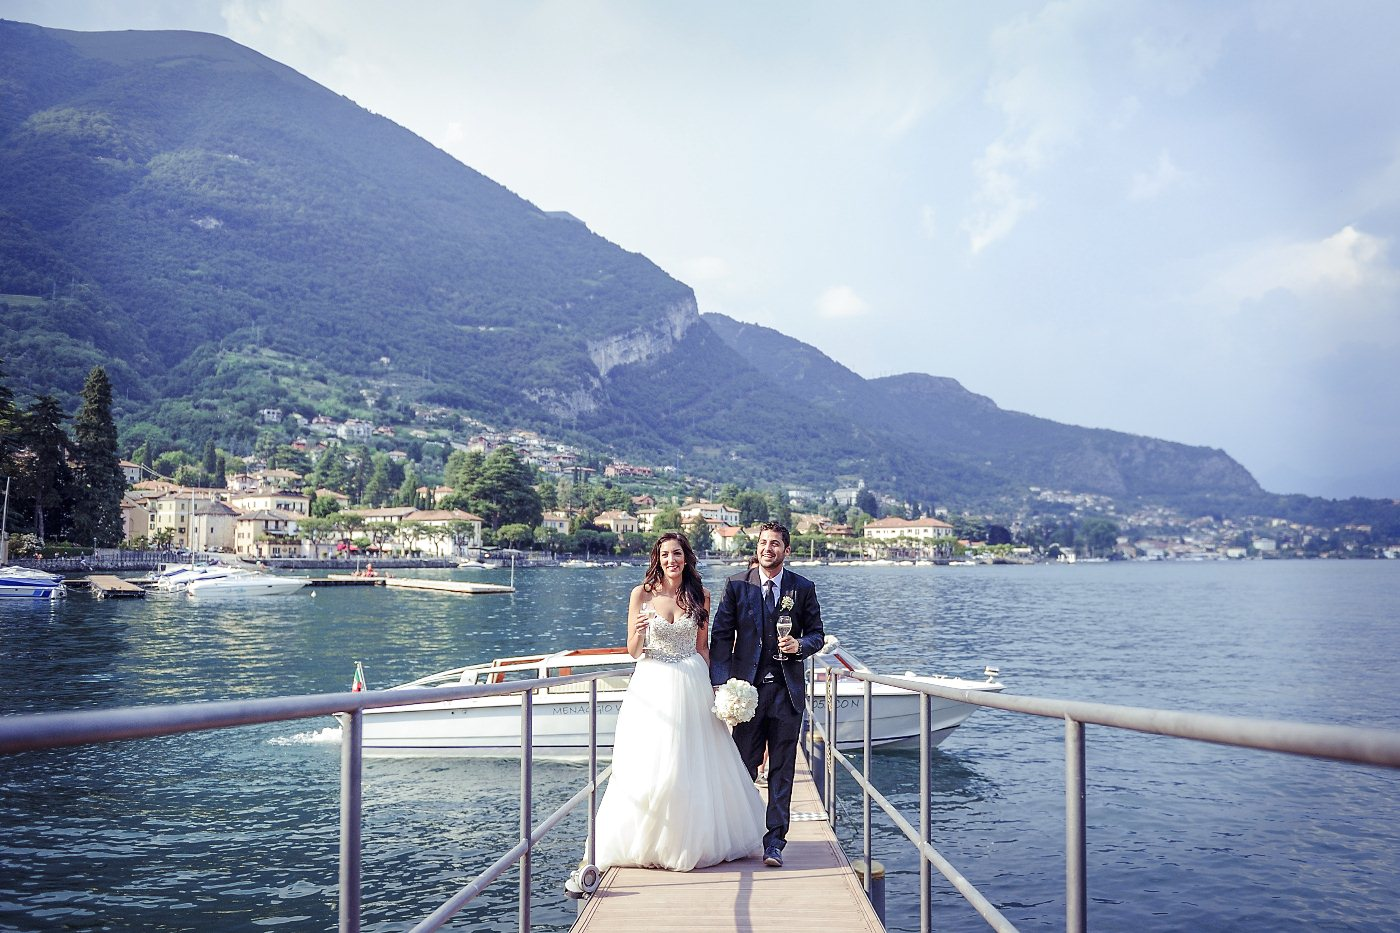 wedding photo tremezzo_16.jpg